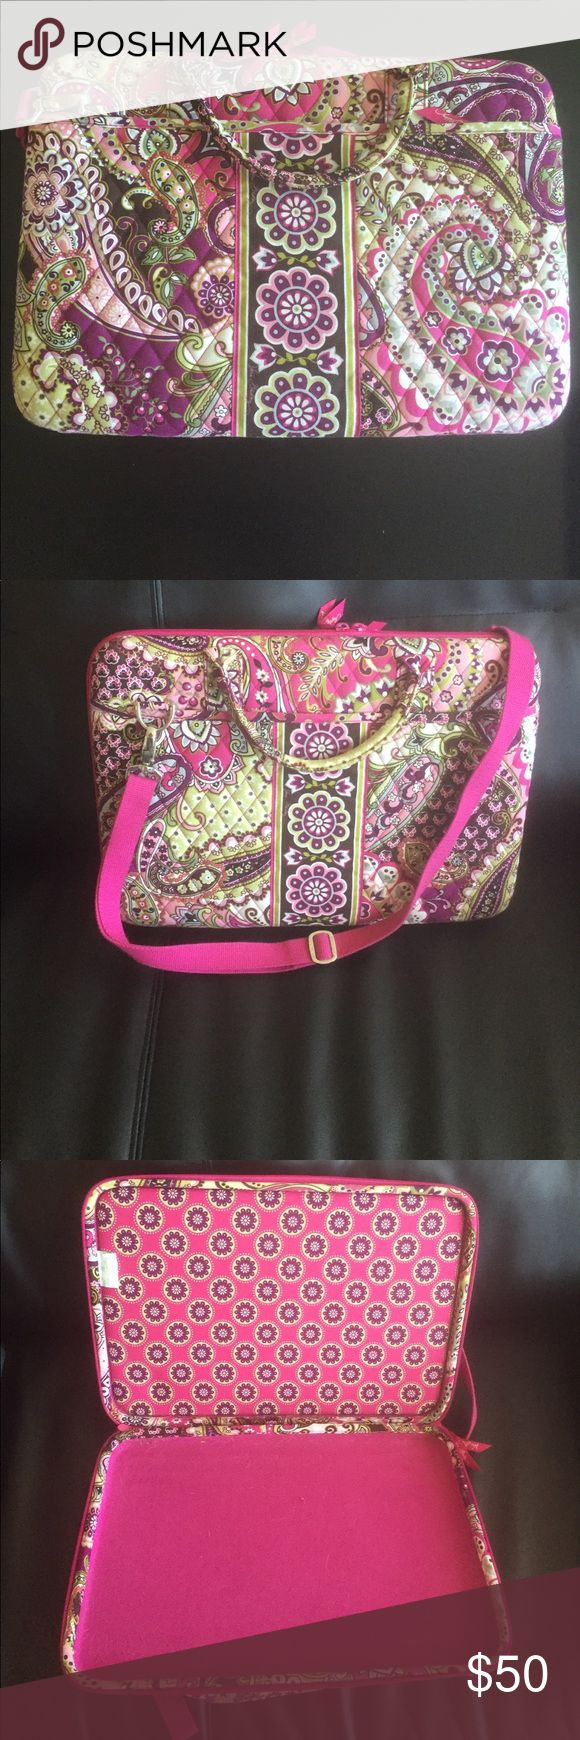 Vera Bradley laptop case Vera Bradley laptop case. Two outer pockets. Carrying strap and handles. Vera Bradley Bags Laptop Bags